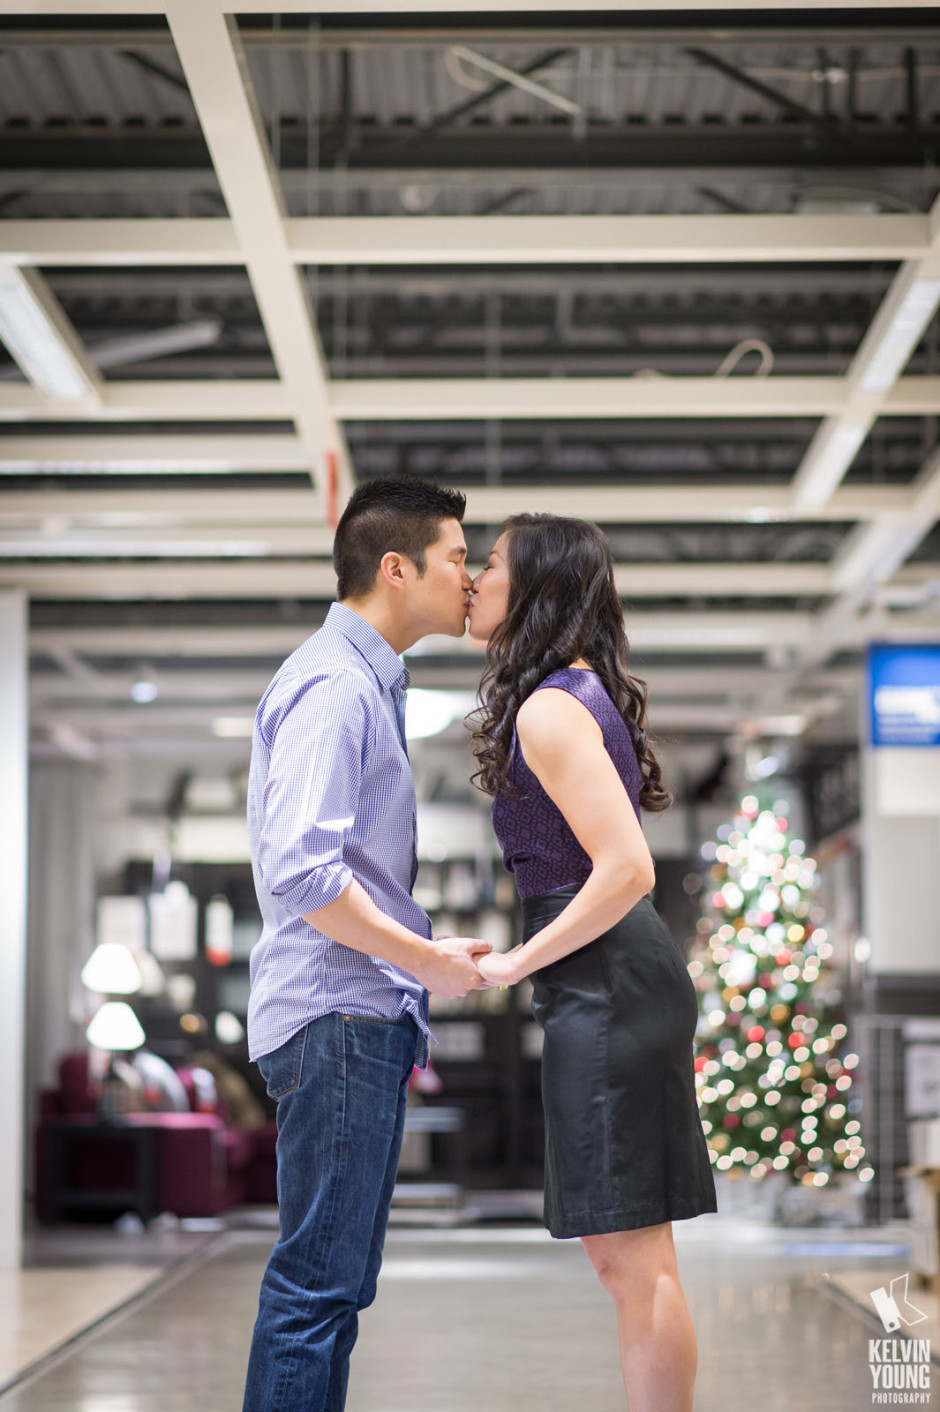 KYP-Engagement-Wedding-Photography-Kim-Jason-Ikea_10